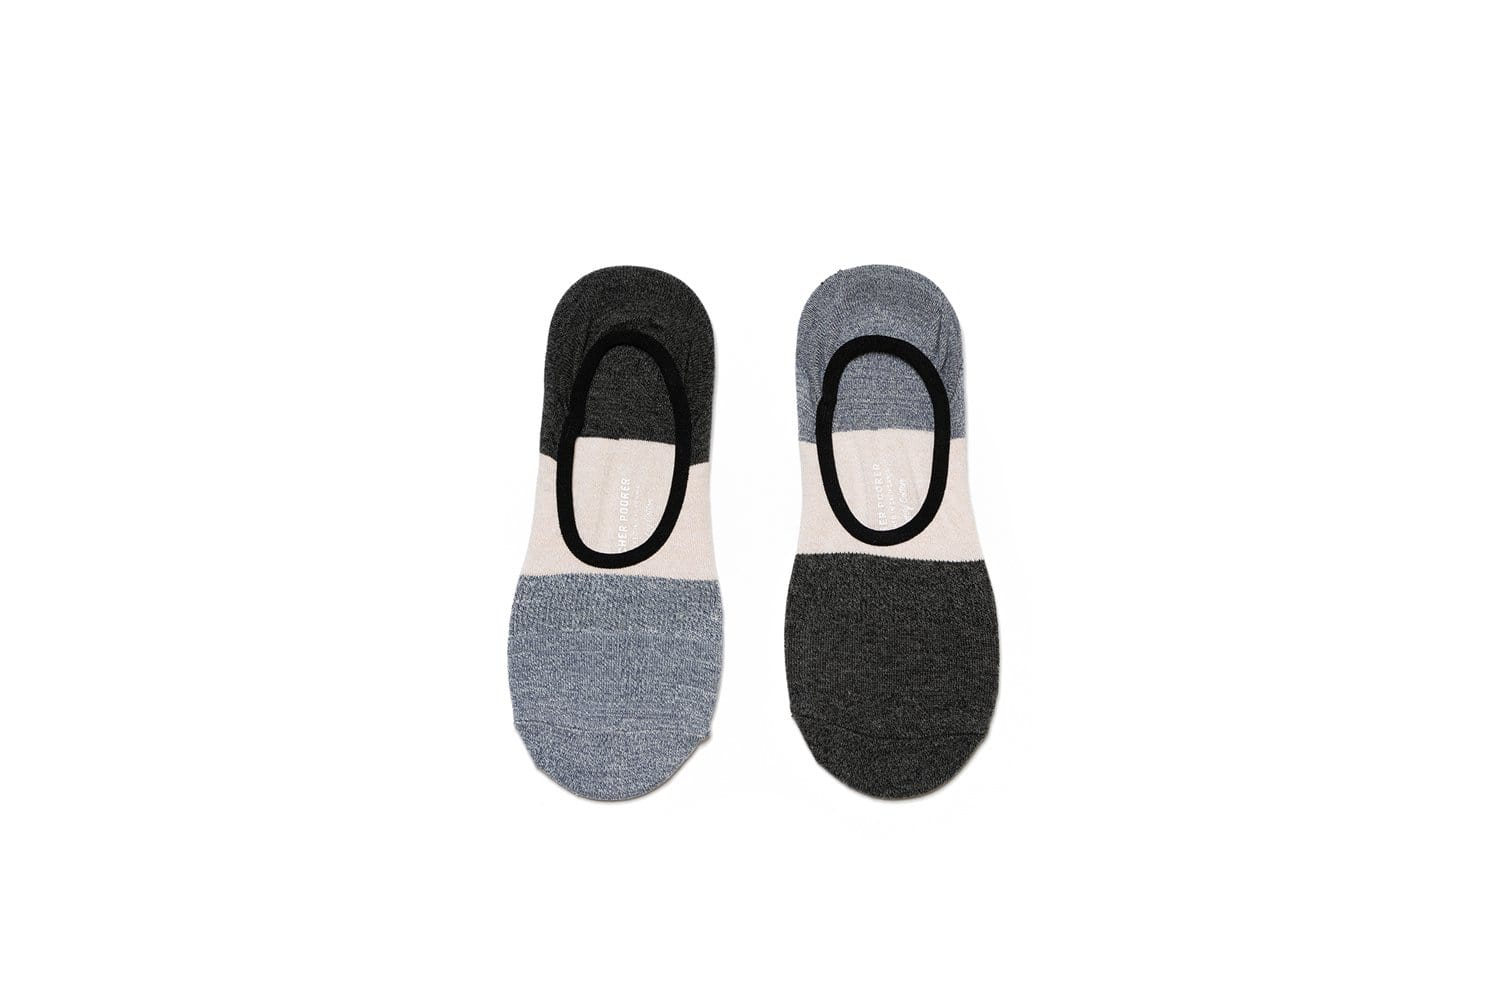 Mens No Show Socks - 2 Pack - Grey & Black